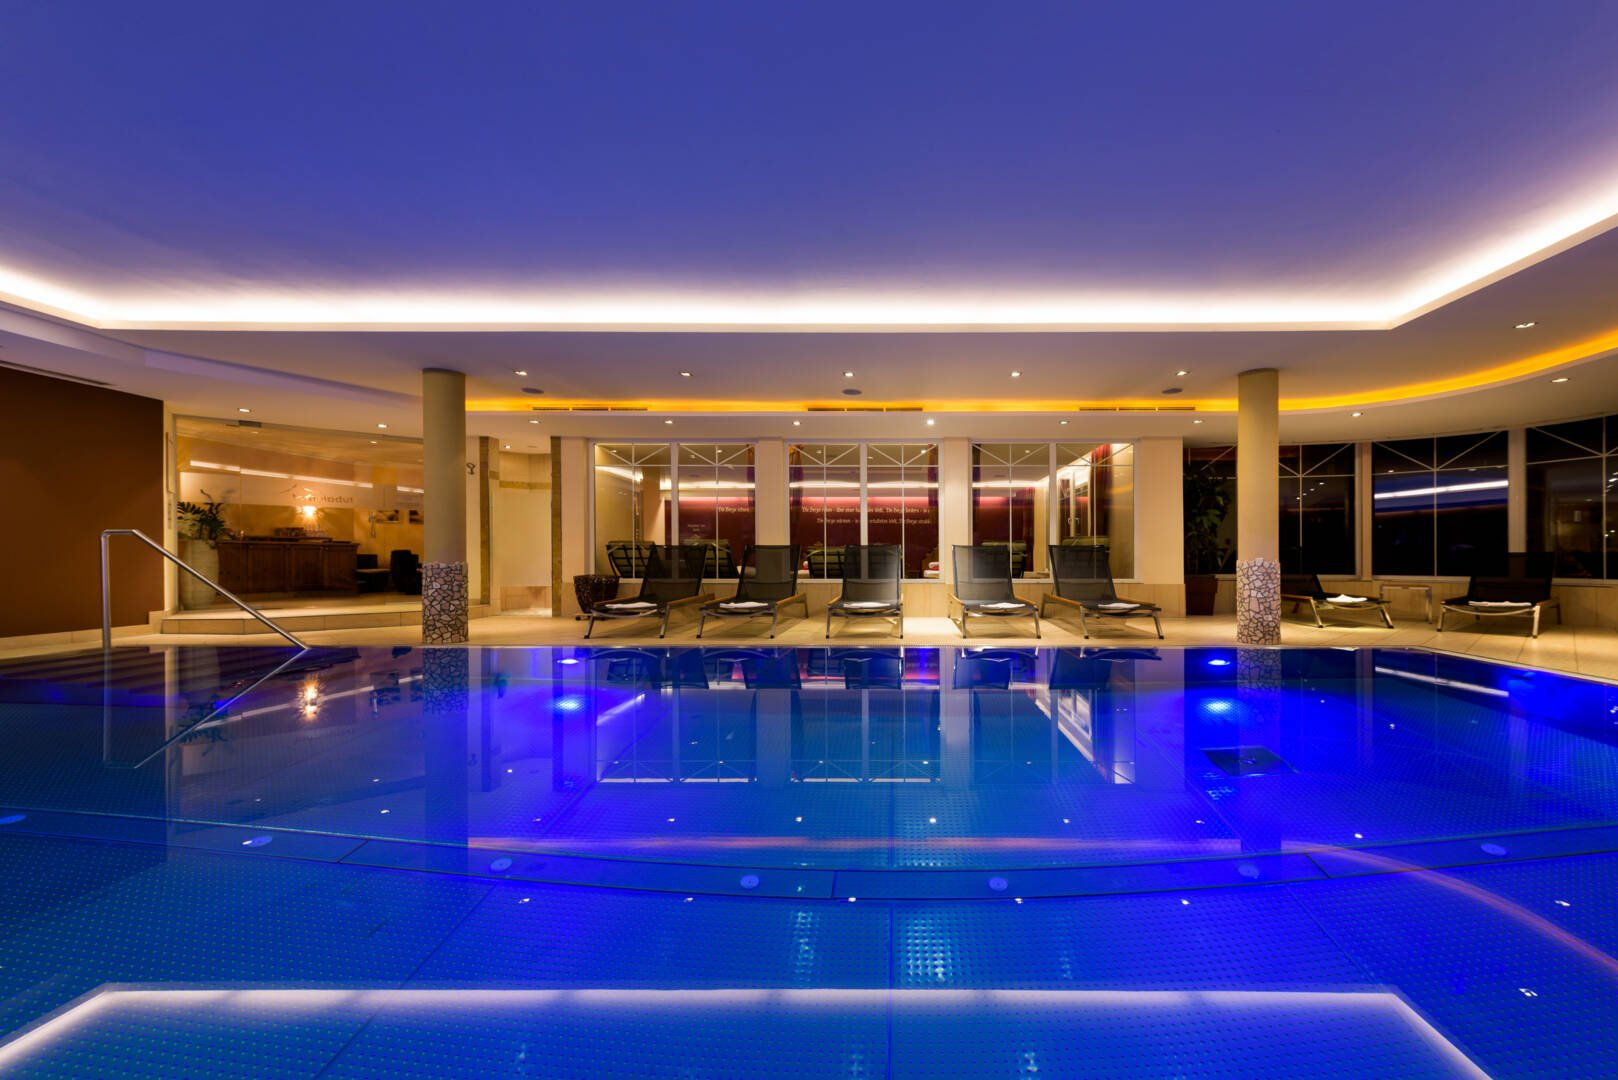 Pool with current to swim against - The Pool Features A Jetstream System That Allows You To Swim Against The Current As Well As Bubble And Massage Facilities